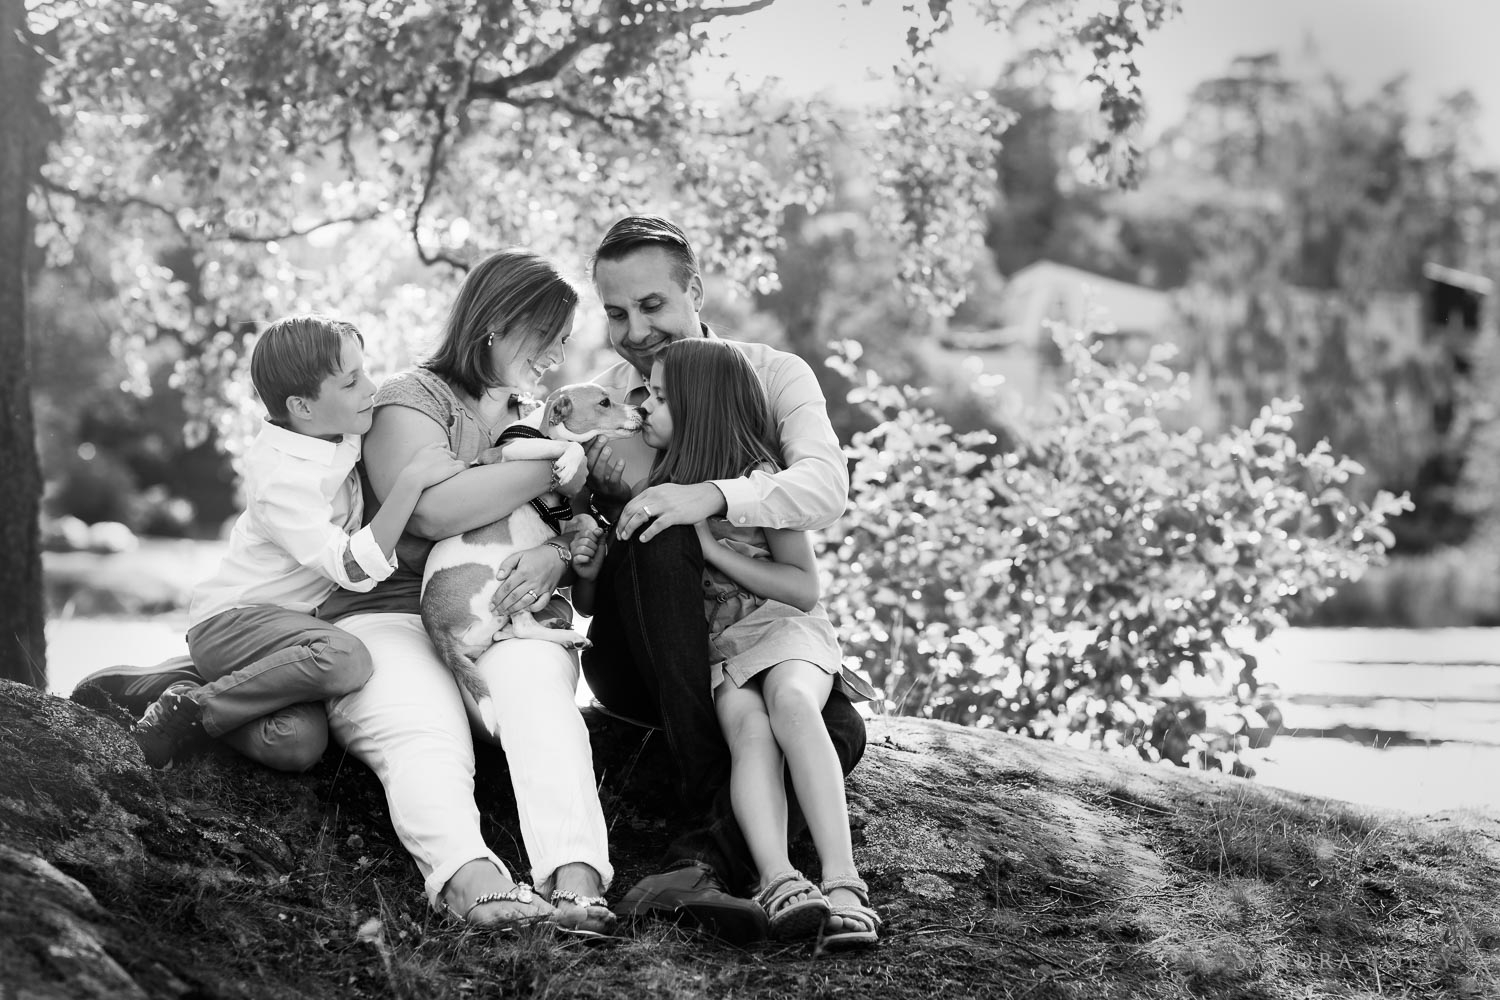 b&w-family-and-dog-photo-session-by-stockholm-family-photographer-sandra-jolly.jpg